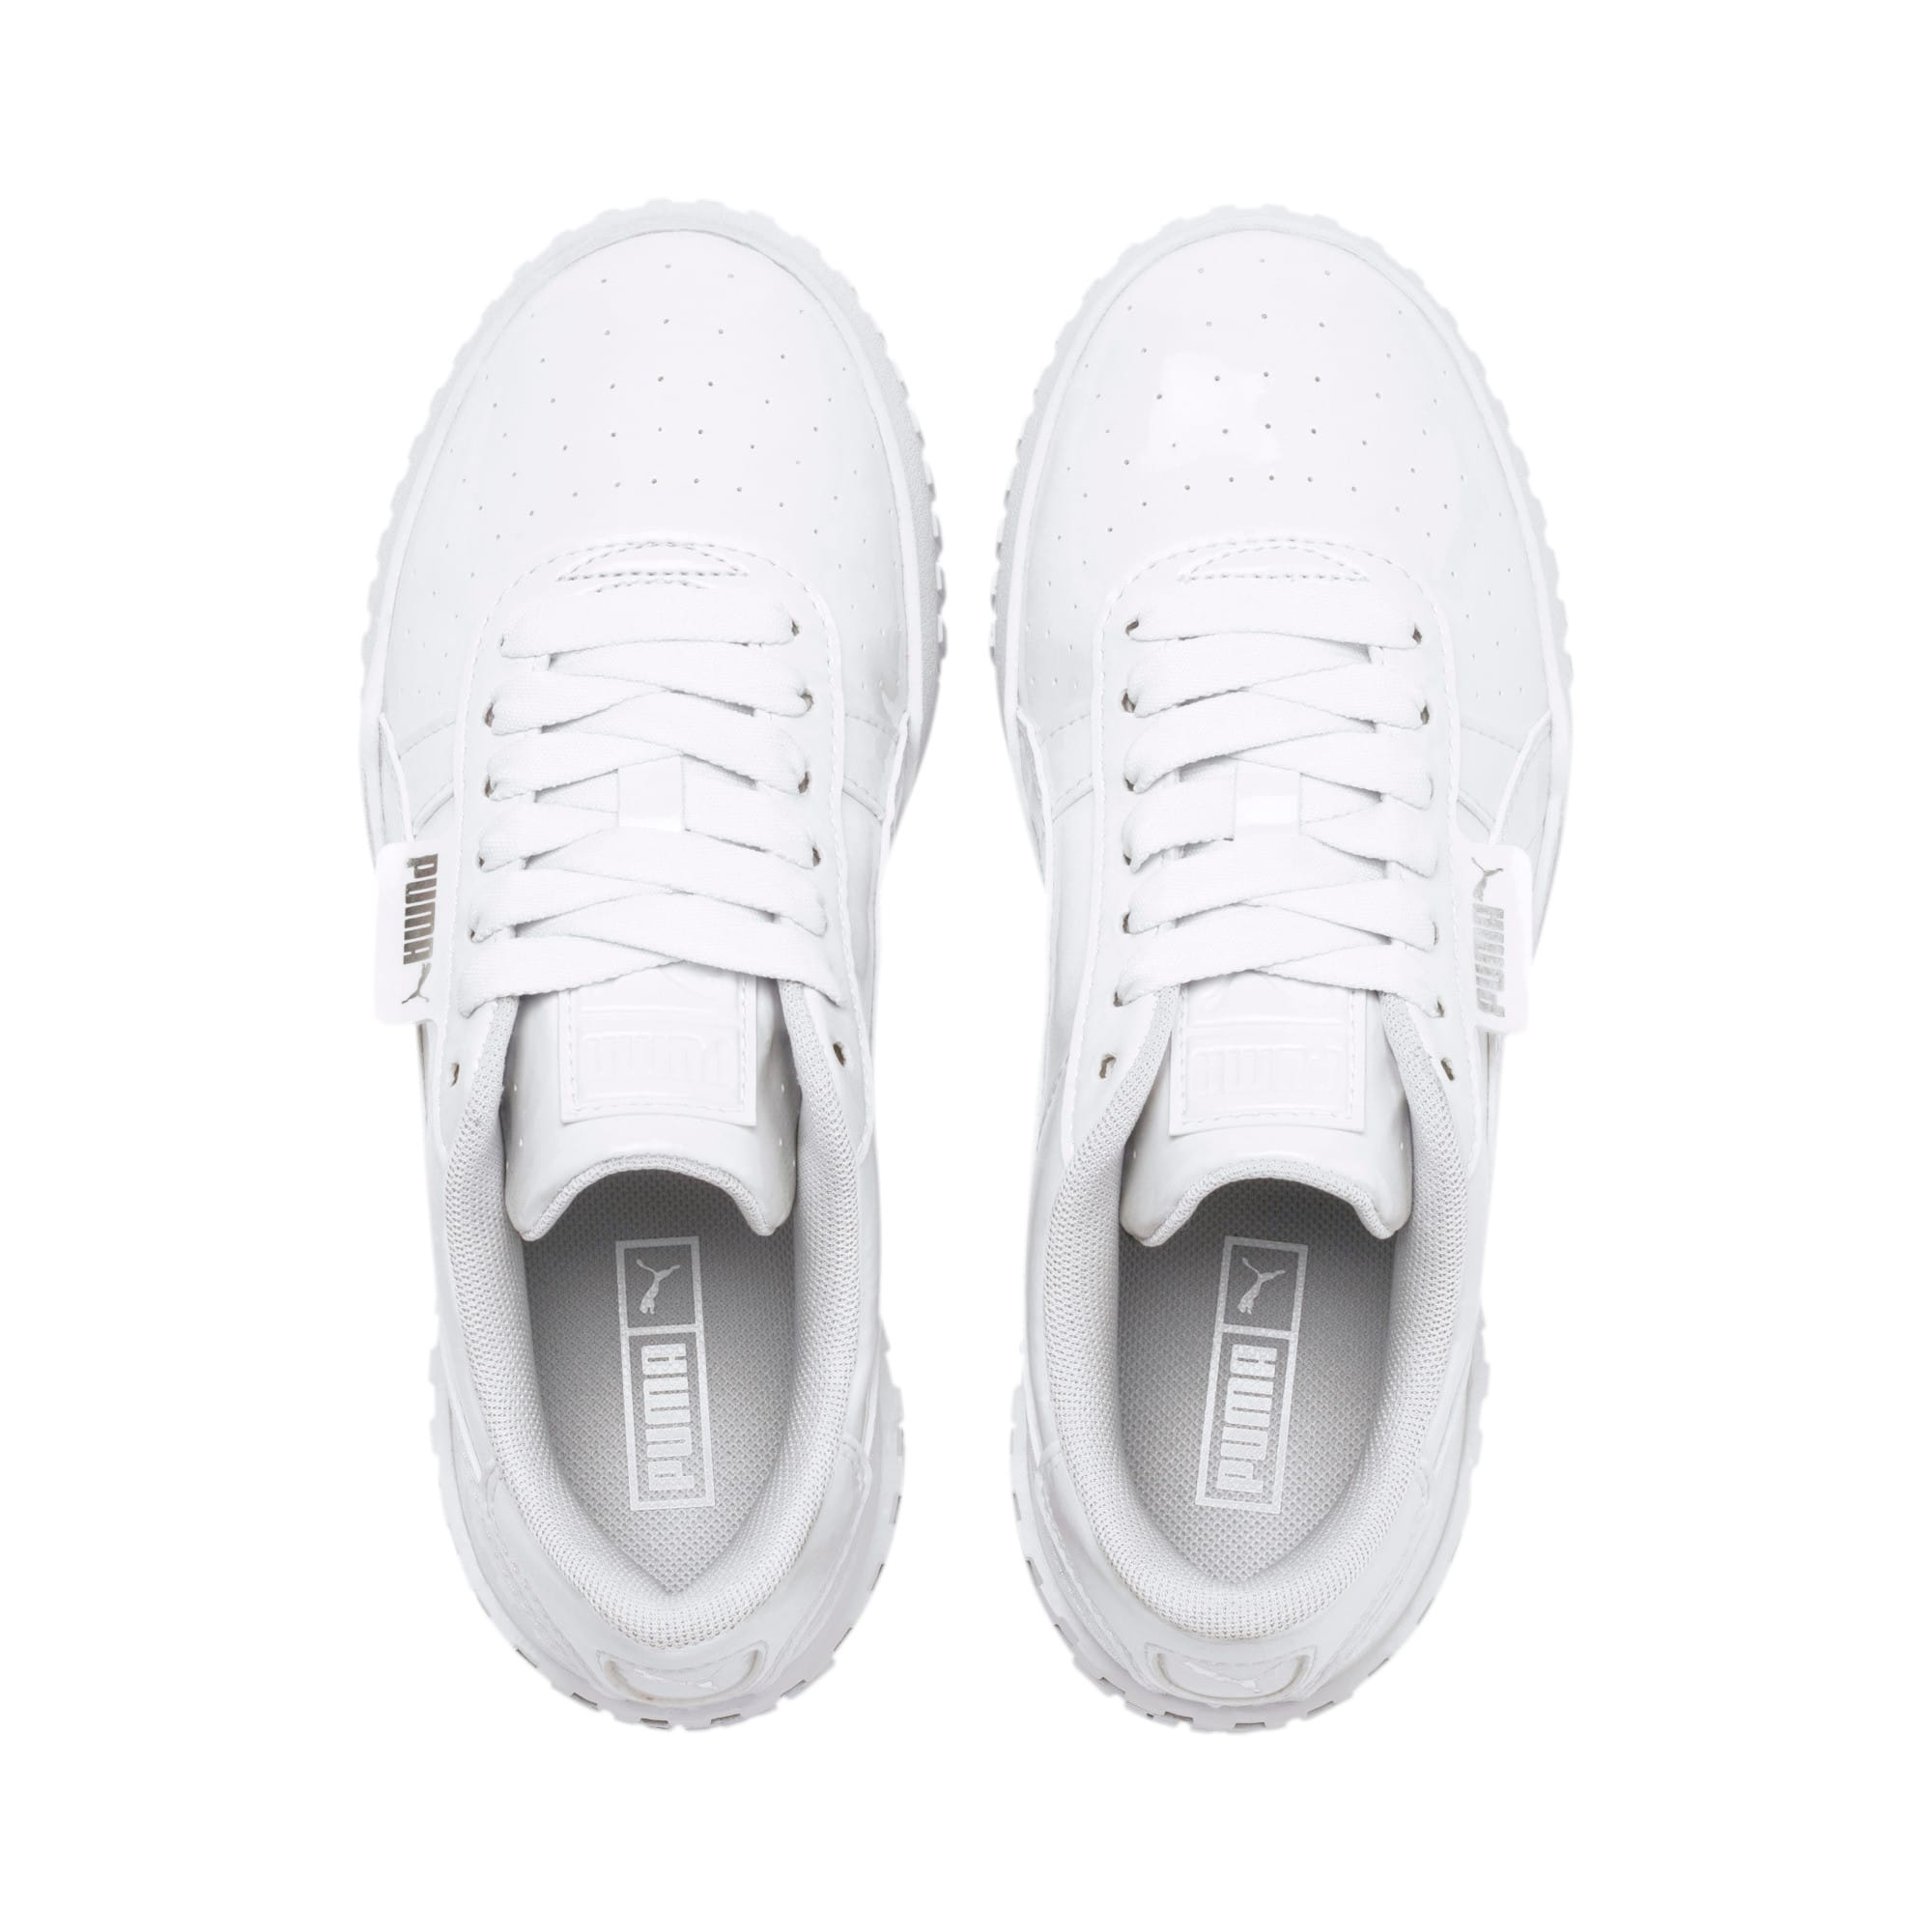 Thumbnail 6 of Basket Cali Patent Youth, Puma White-Puma White, medium